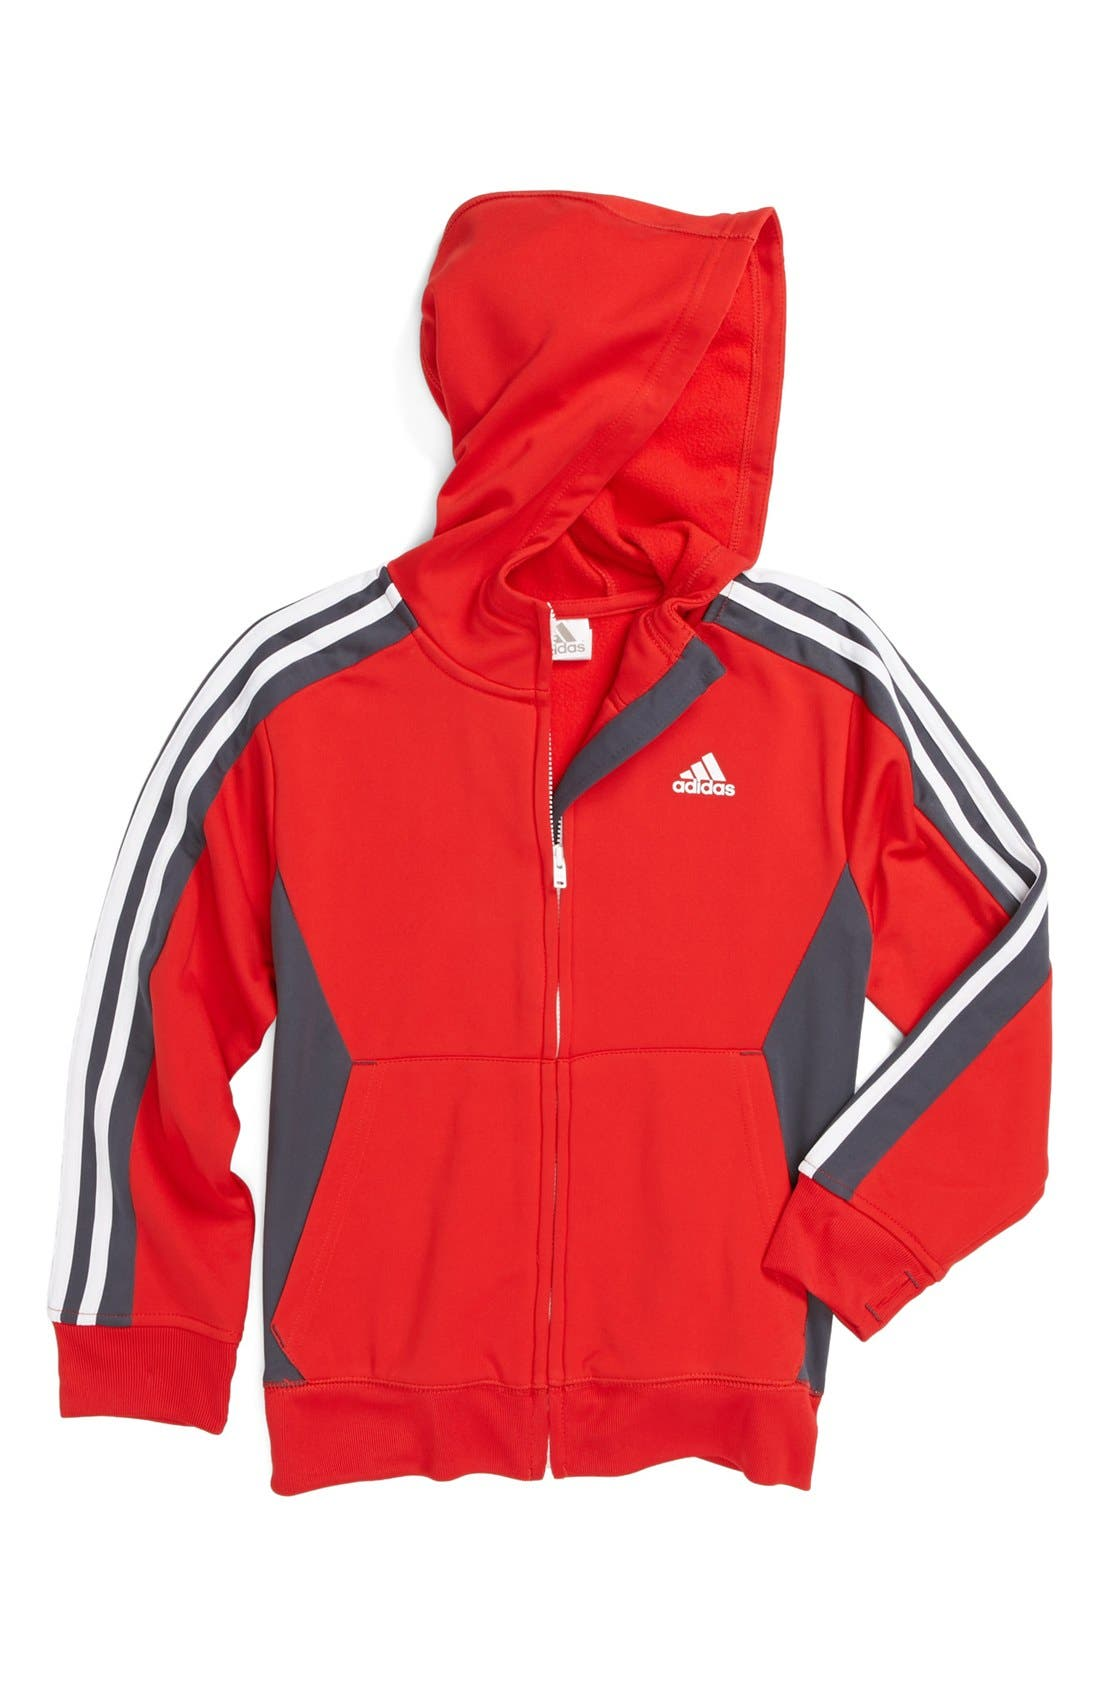 Alternate Image 1 Selected - adidas 'Prime' Jacket (Little Boys)